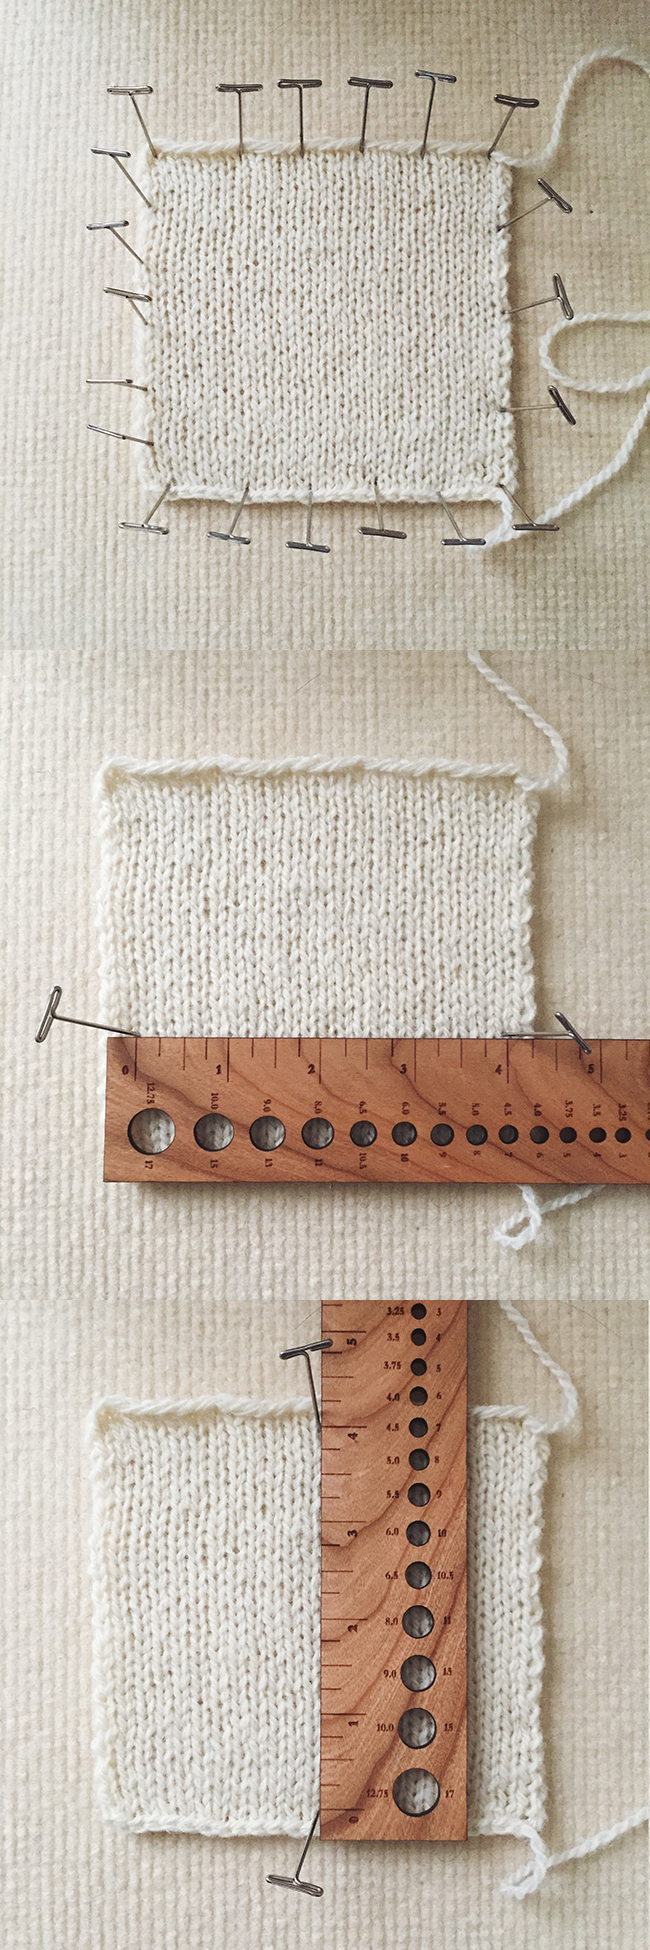 How to knit and measure a gauge swatch